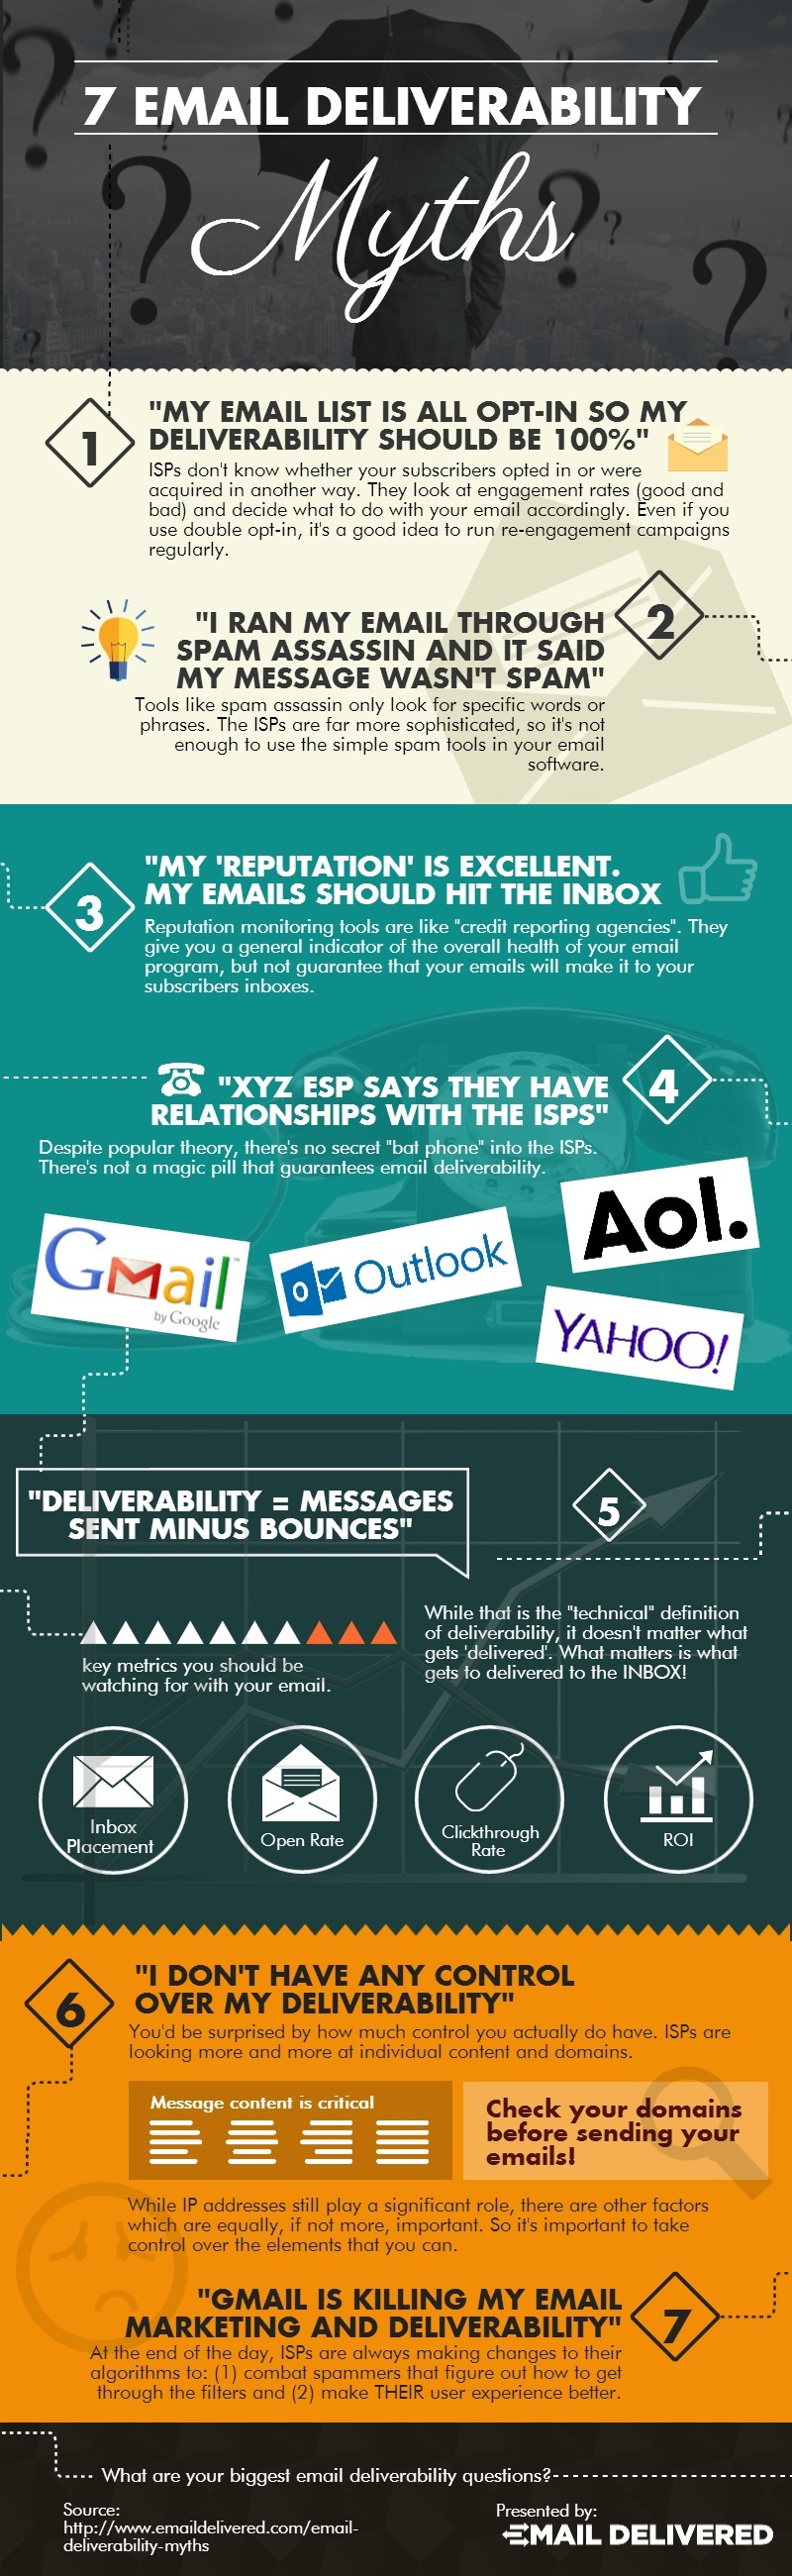 7 Email Deliverability Myths